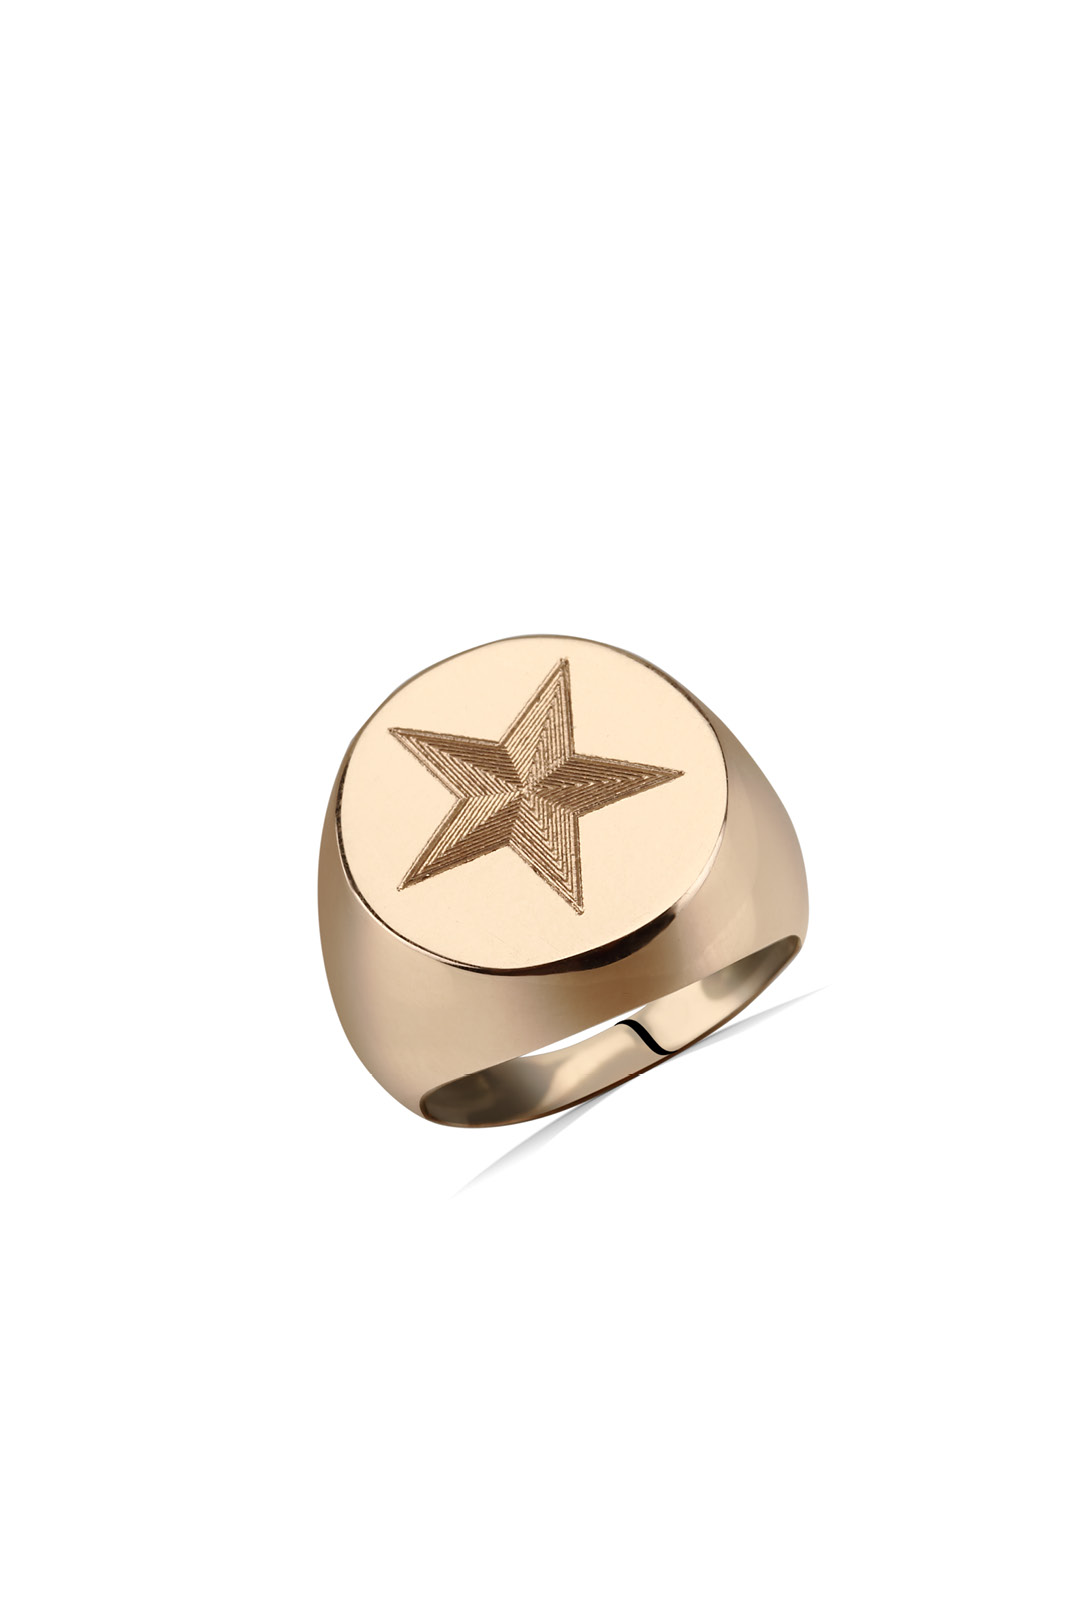 STAR LITTLE FINGER RING